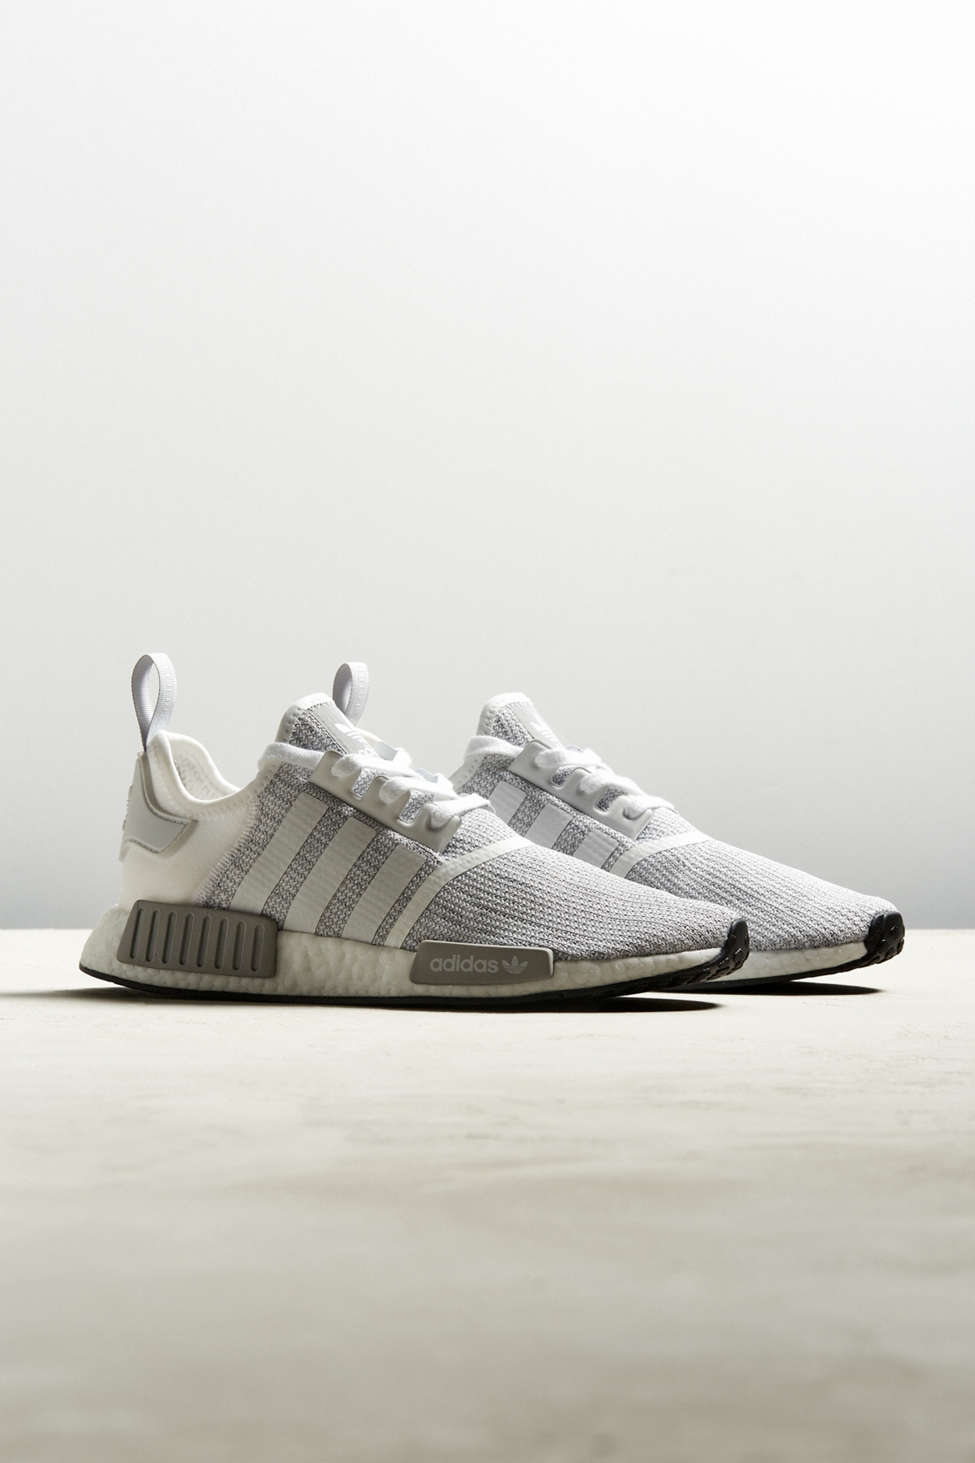 nmd r1 (urban outfitters scarpe adidas